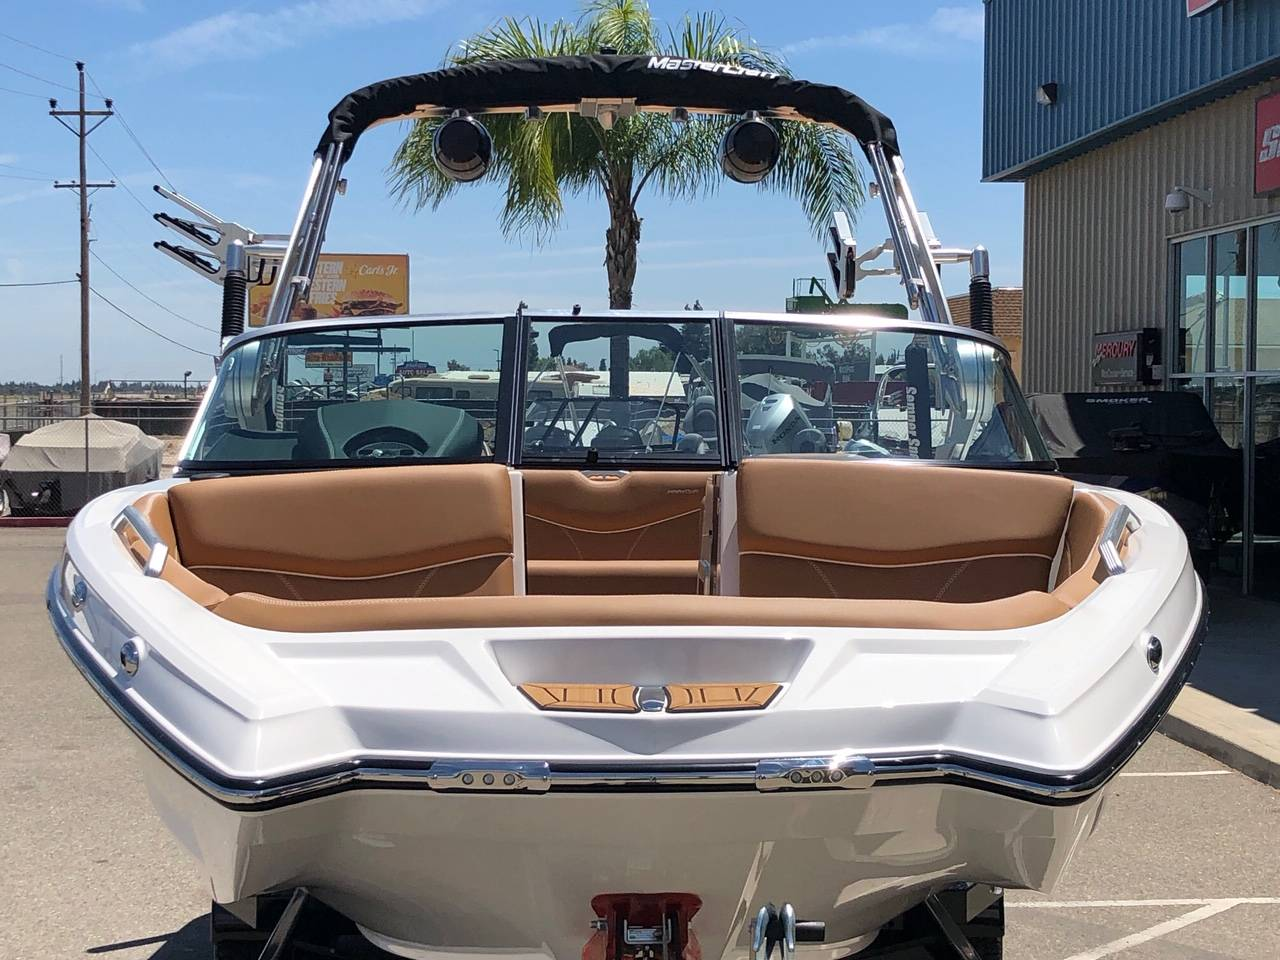 2019 Mastercraft XT22 in Madera, California - Photo 3